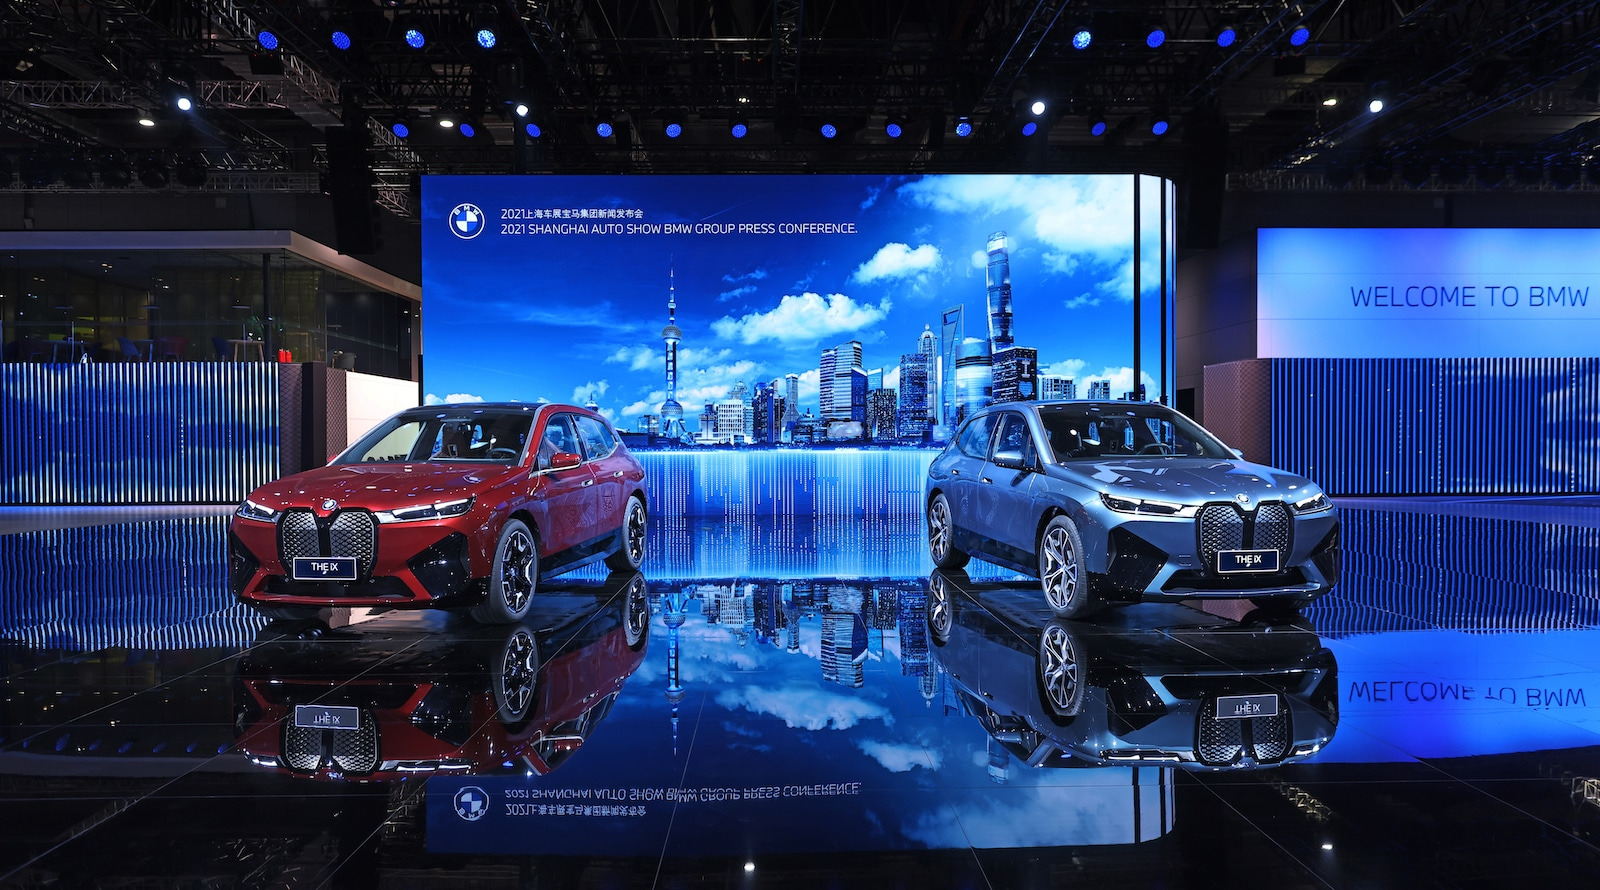 BMW Unveils its Newest EV and iDrive Operating System in Shanghai - The Detroit Bureau